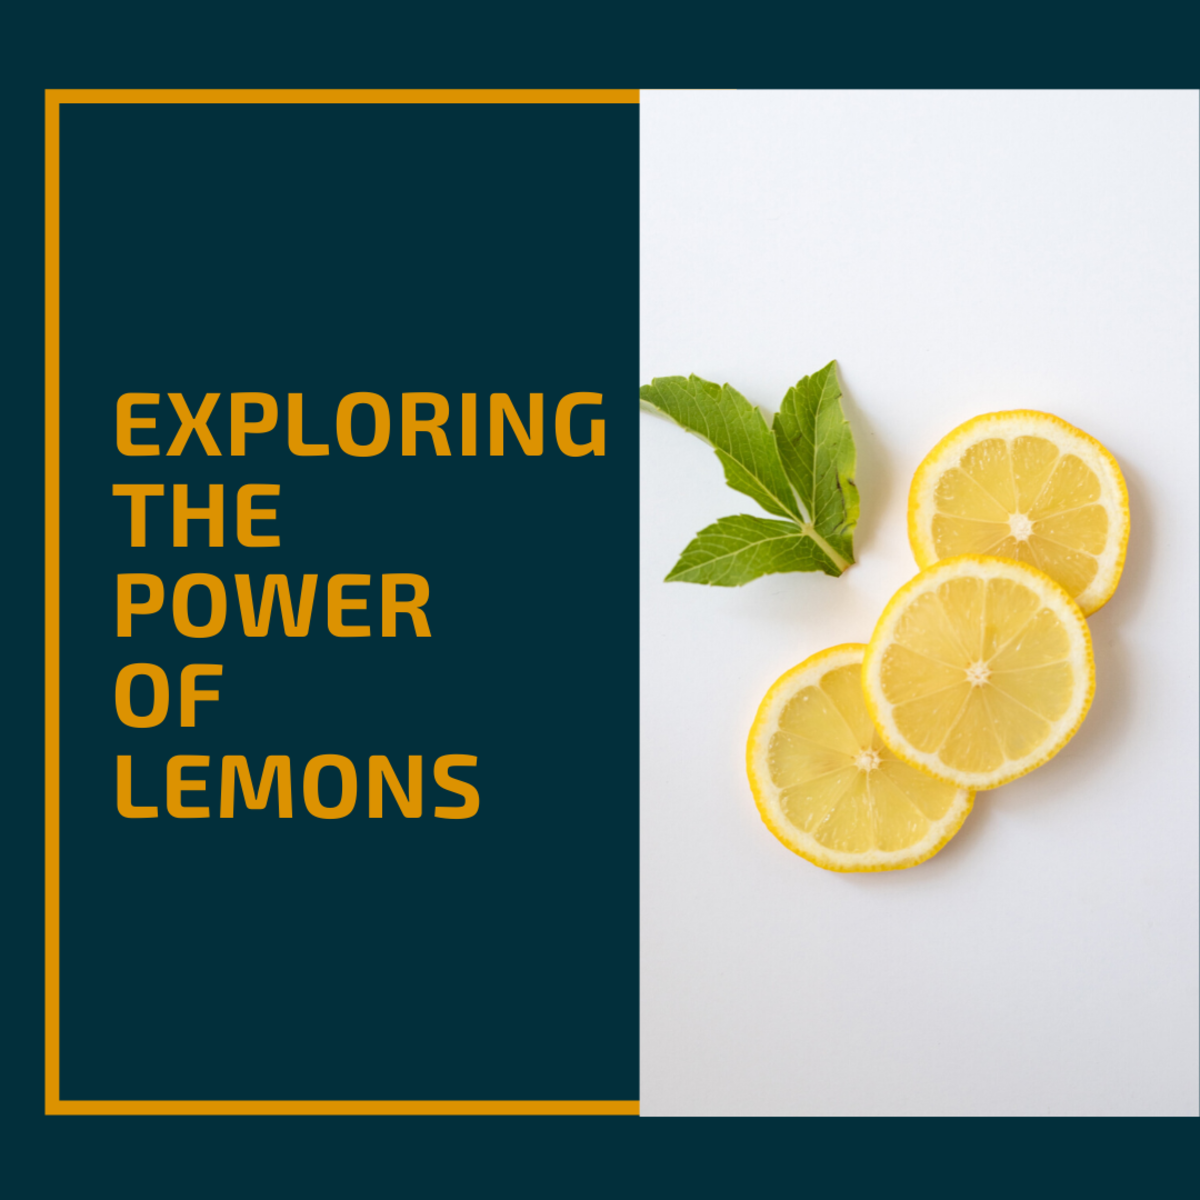 This article explores the amazing things you can make with lemons!